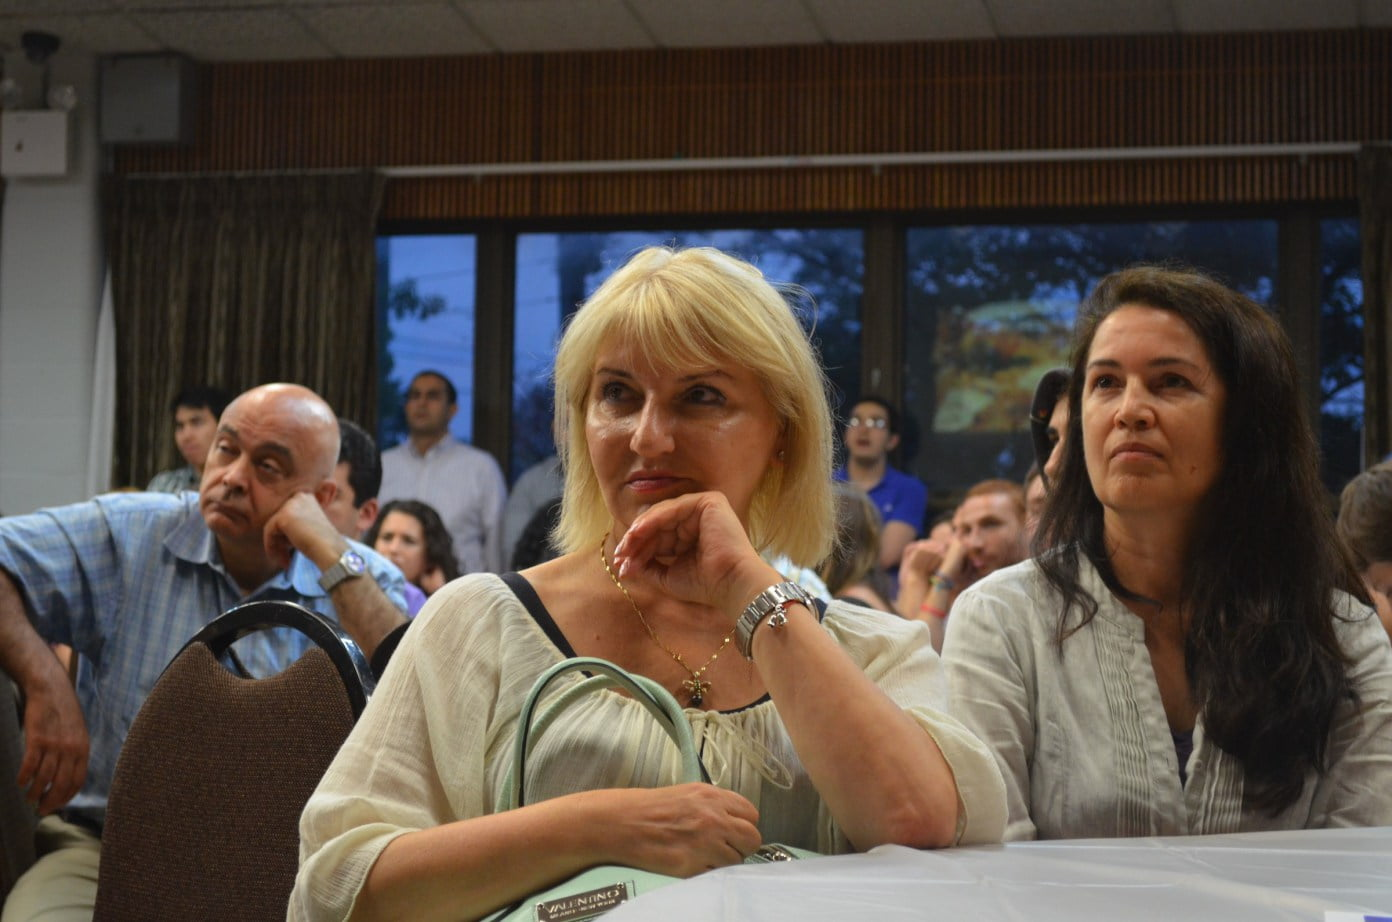 In the foreground: Polena Gillerman is Jewish and Rida Sadykova is Muslim. They are longtime friends. (Photo: Alex Ellefson / Sheepshead Bites)